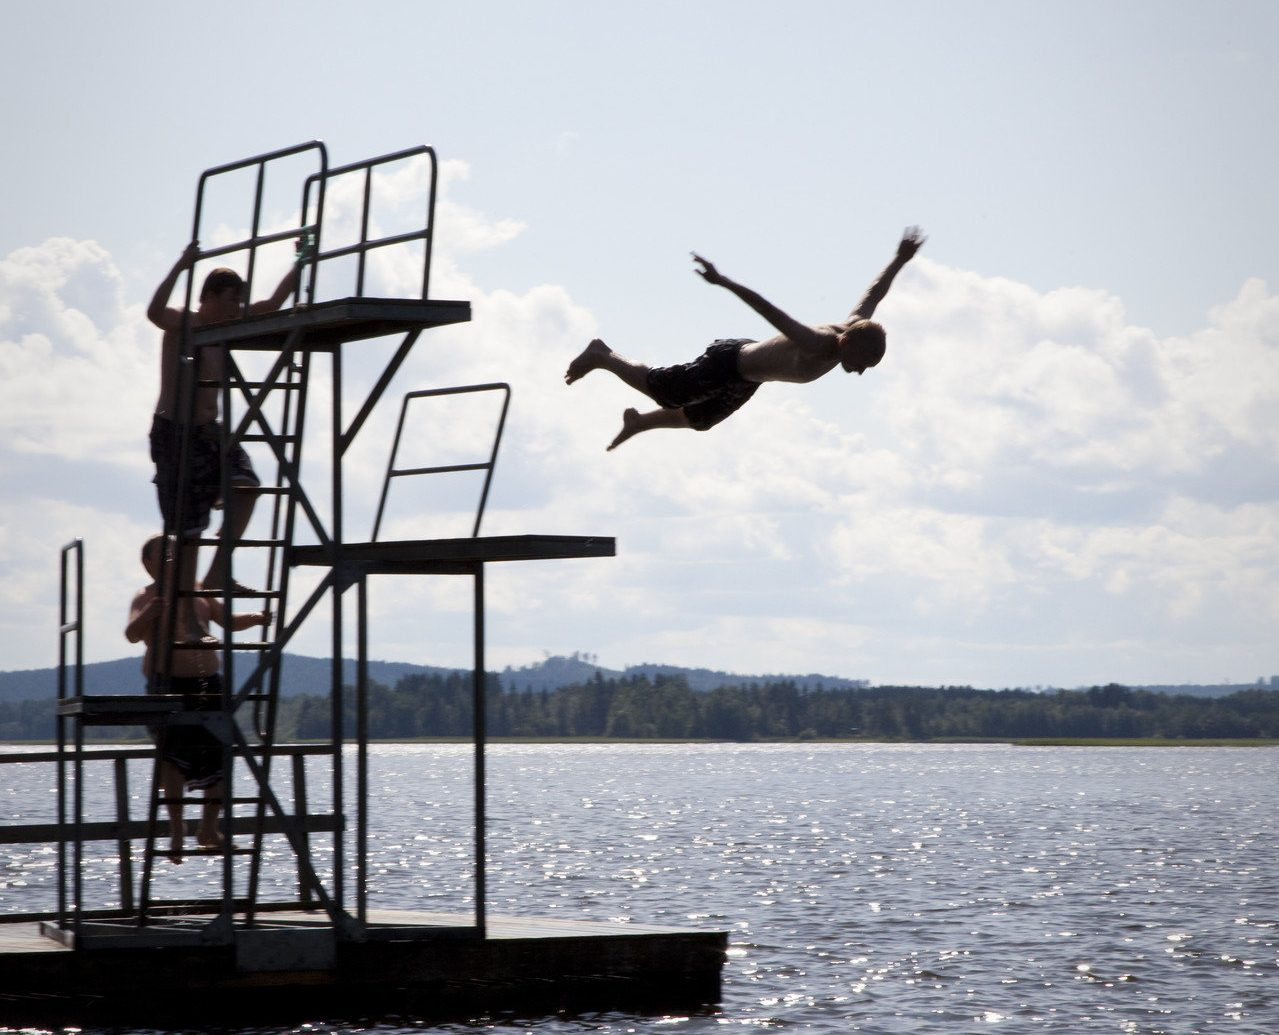 dive diver diving people Play trees Trip Ideas water Water activities Water Sports sky outdoor Boat Sea Ocean ship sailing Coast vehicle wind boating bay jumping Lake distance day land